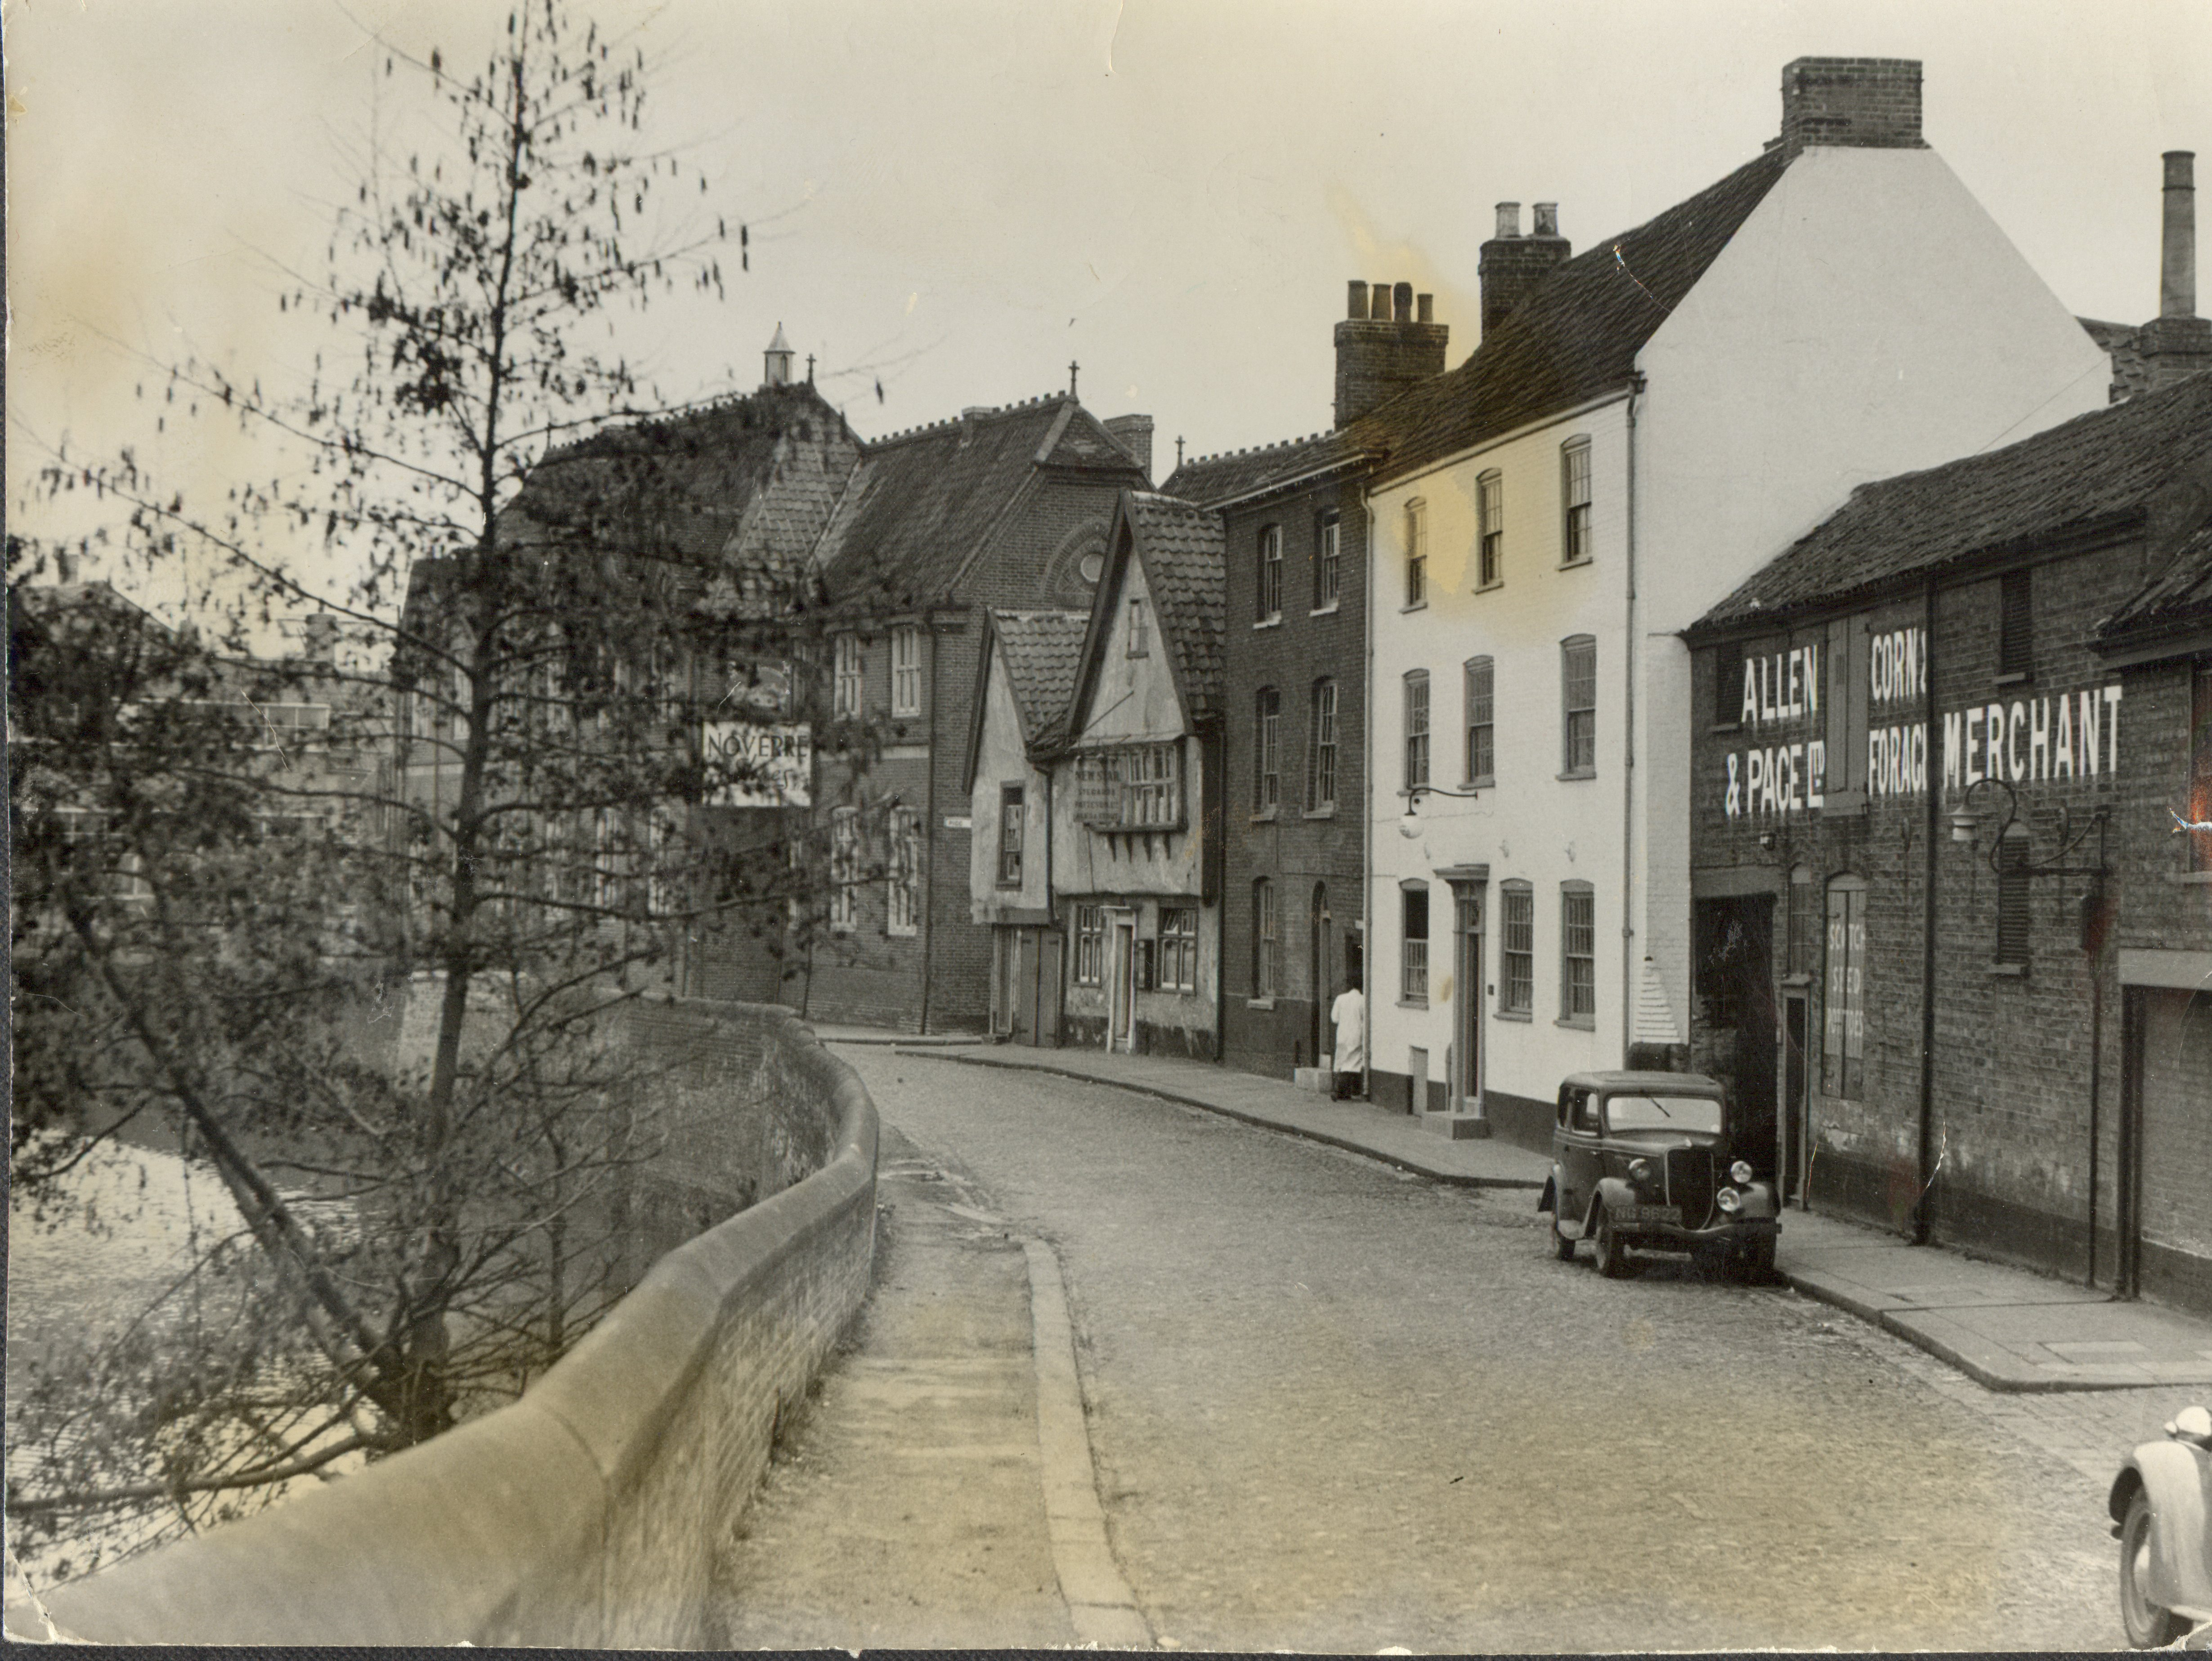 River City Ford 2 >> Busseys Back Then: The Bustling 1930s - Busseys Ford and Peugeot Norfolk